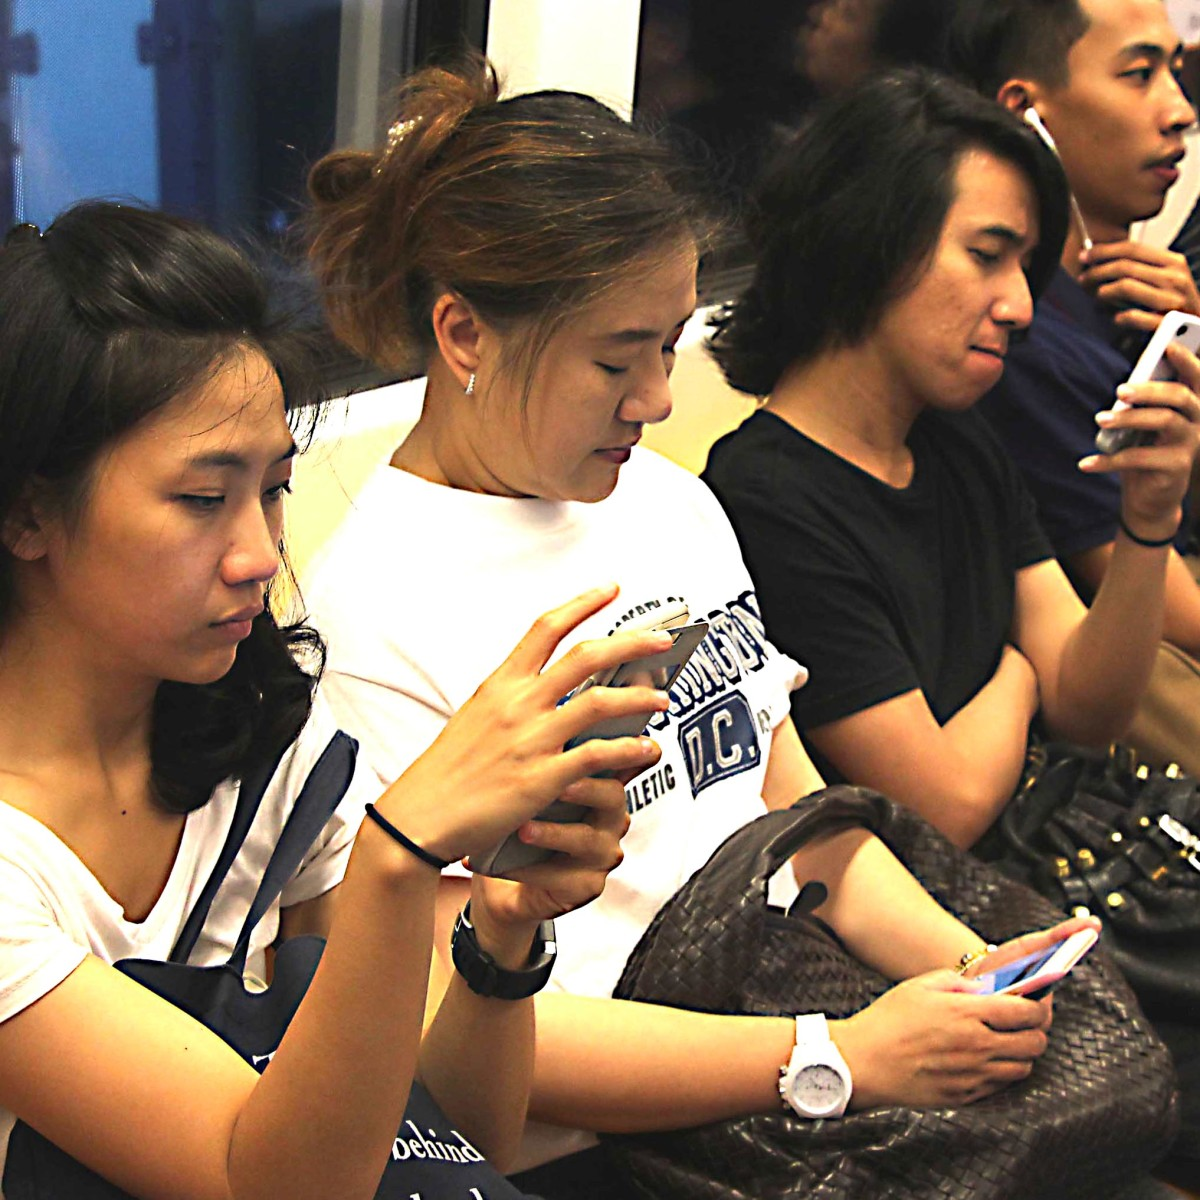 Like everyone in the modern world, commuting Thais are addicted to texting, music playing and gaming on their teeny-weeny cellphone computers. And like everyone else, that often takes precedence over actual social contact